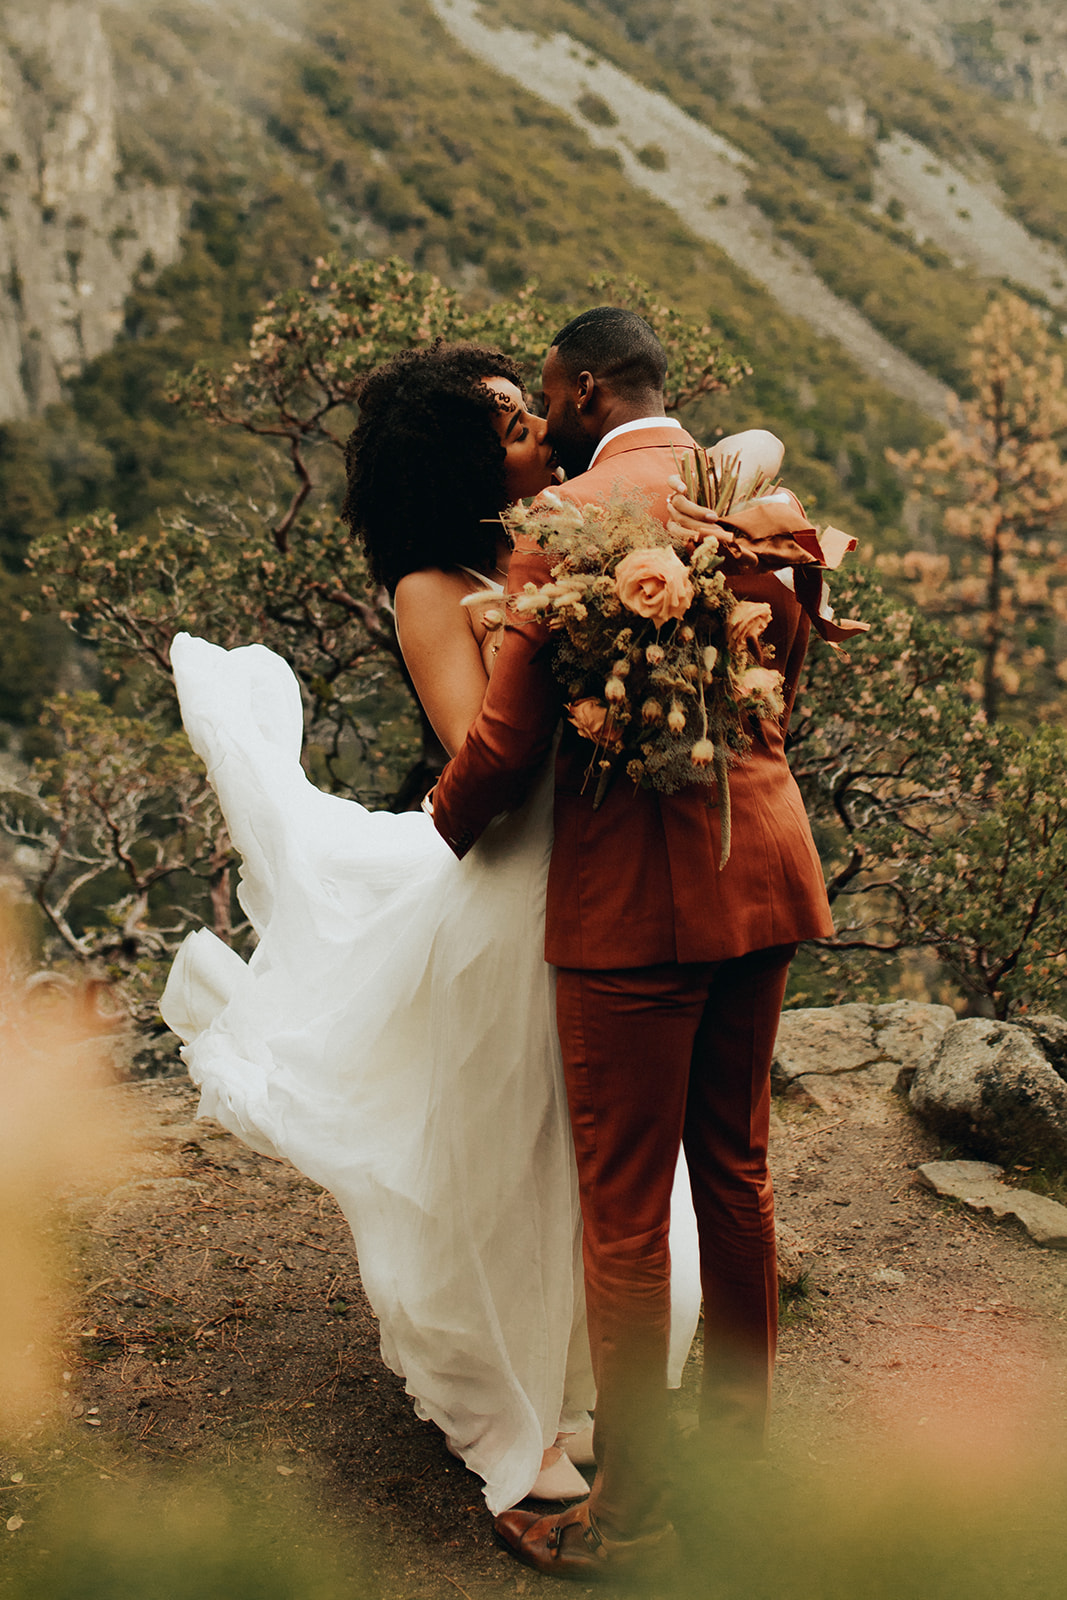 Yosemite_Elopement_Hannah_Alena_Photo_Portland_Wedding_Photographer-94.jpg